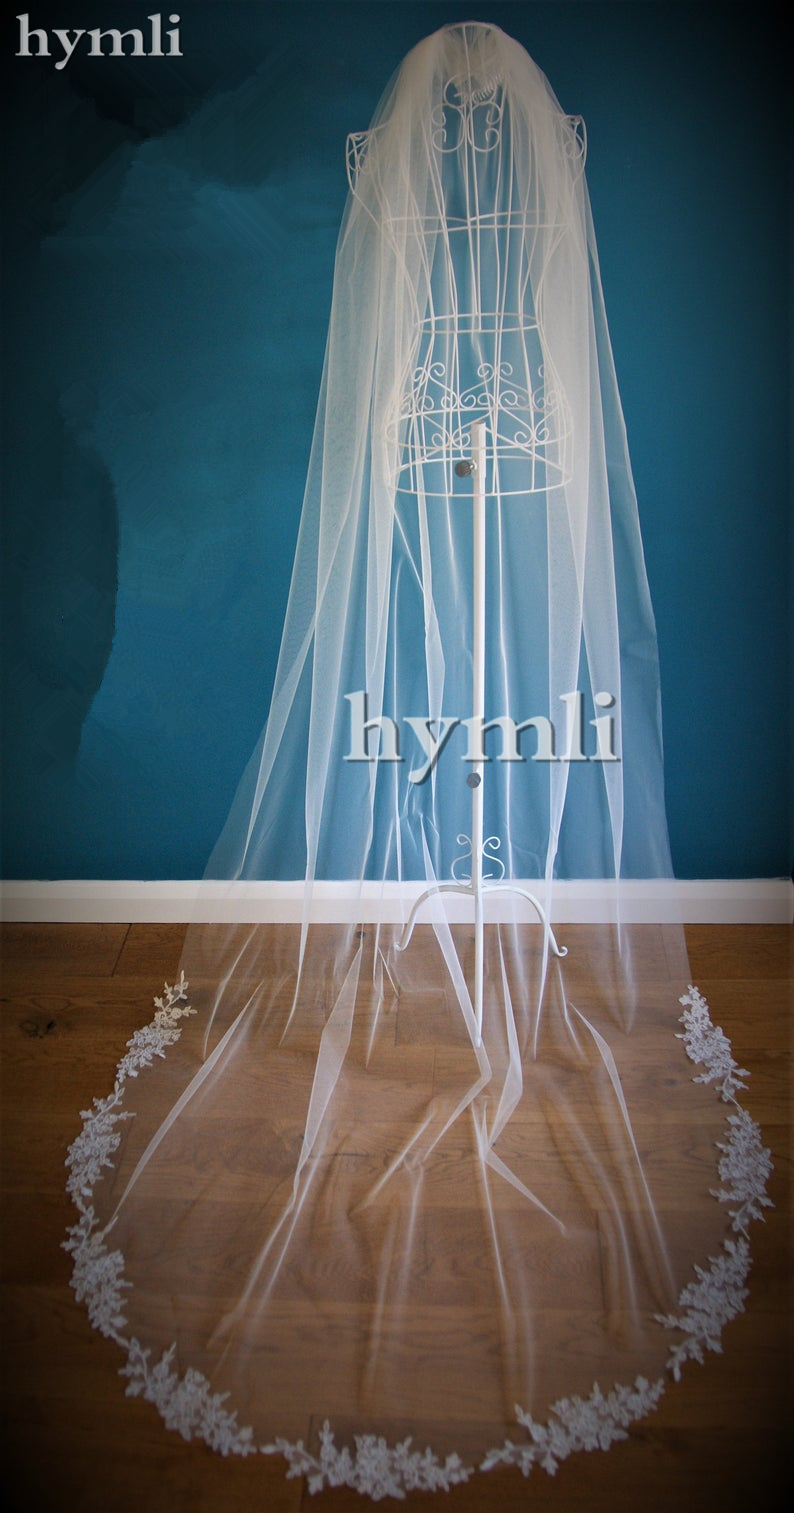 One Layer Lace Applique Wedding Accessories Chapel Veil In White, Off White, Ivory Metal Comb On The Top